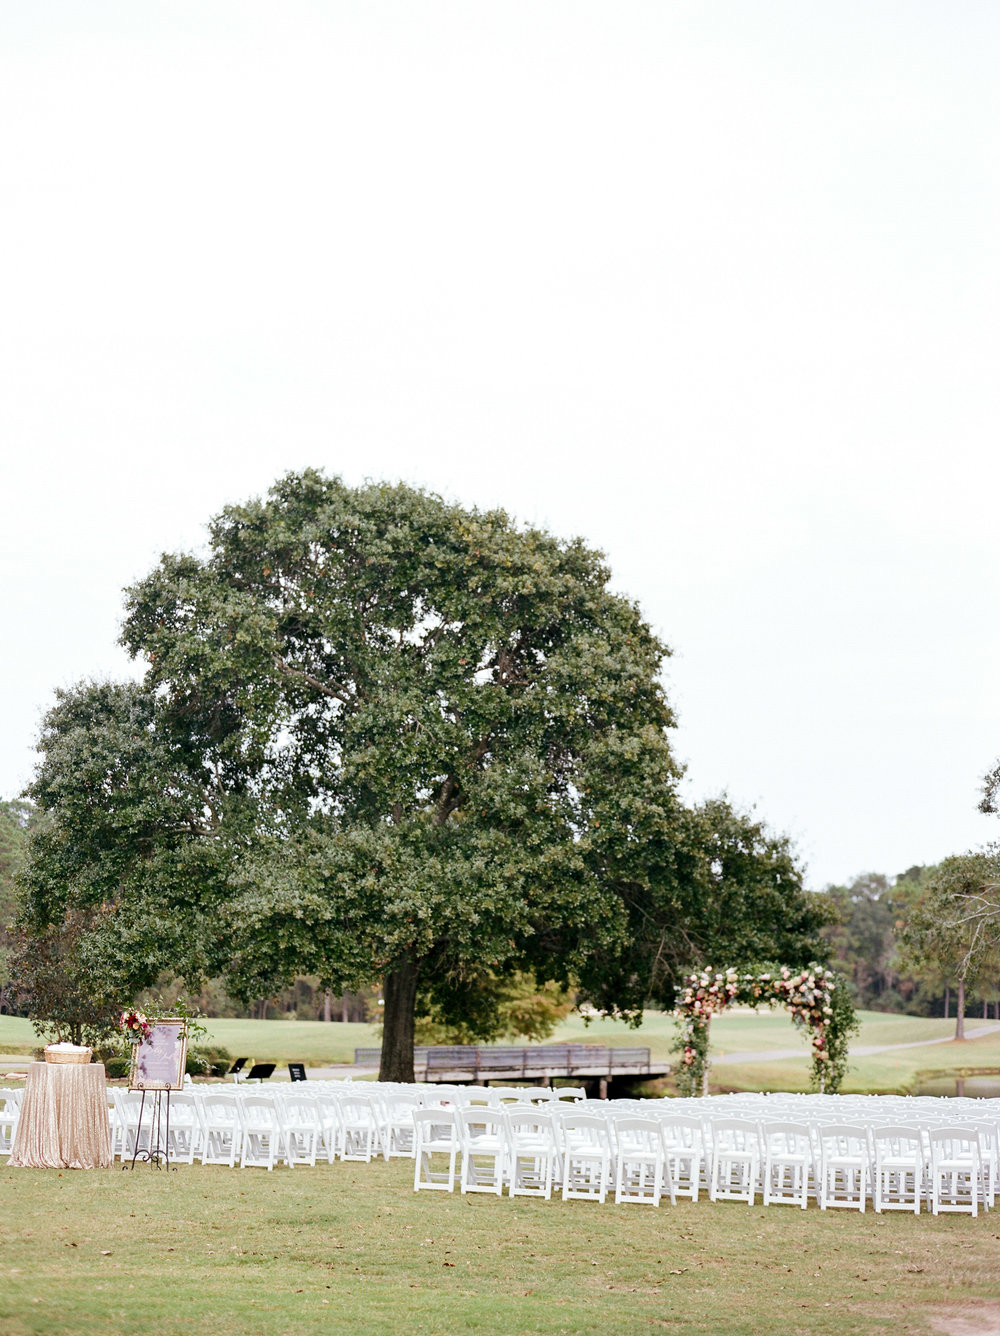 Houston-Wedding-Photographer-Fine-Art-Film-Destination-Style-Me-Pretty-Austin-Dallas-New-Orleans-Dana-Fernandez-Photography-The+Woodlands-Country-Club-13.jpg